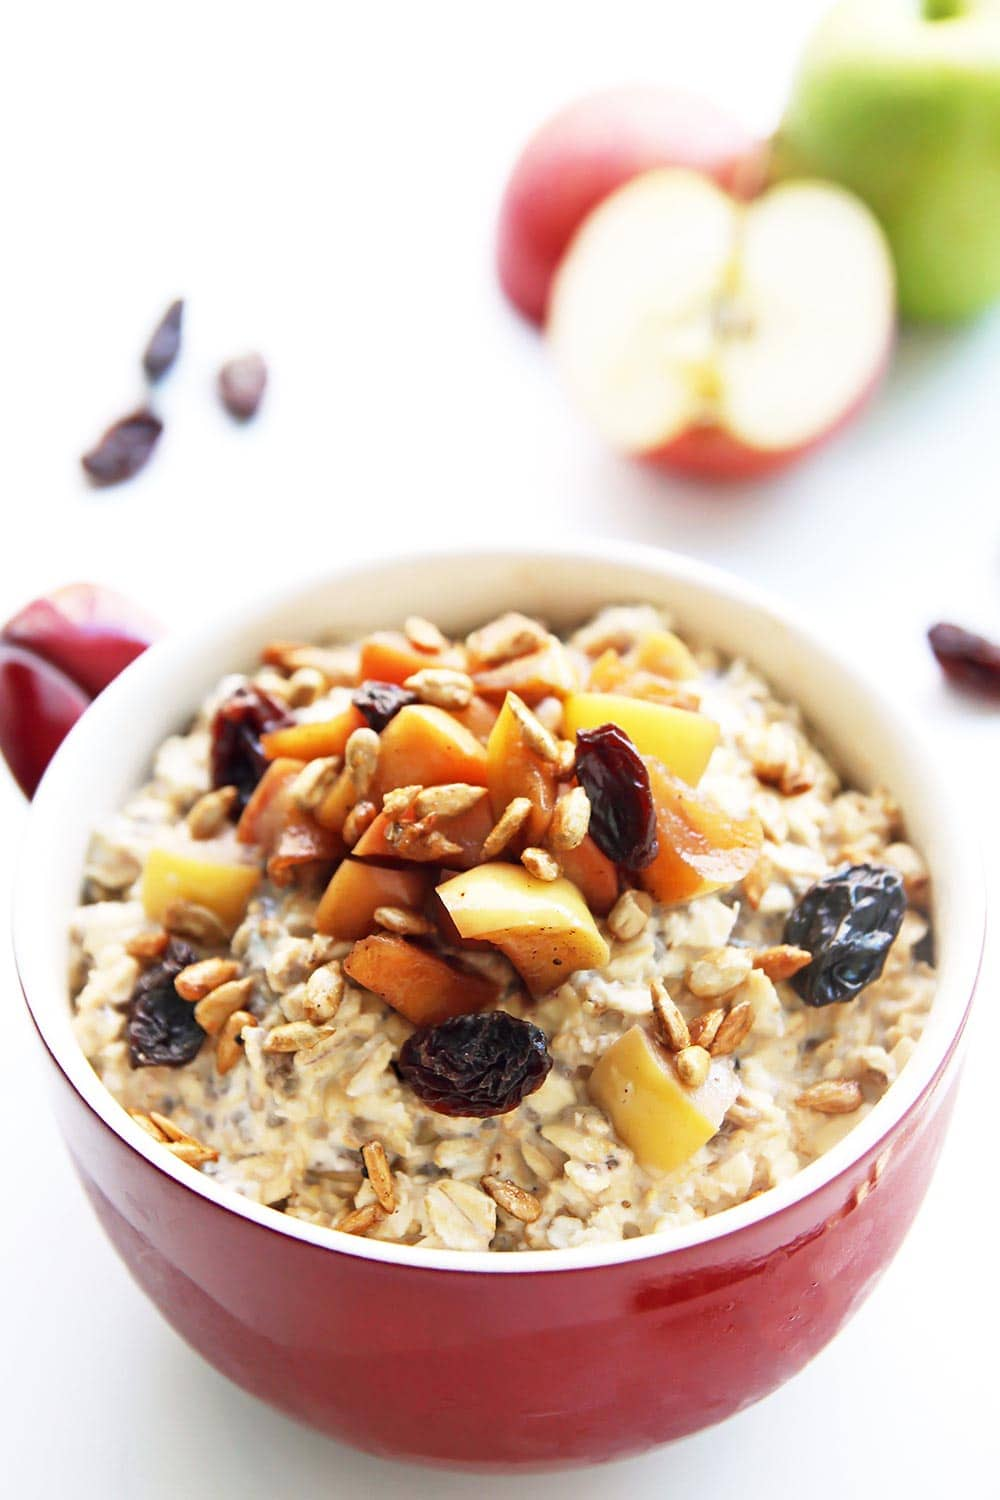 Apple Overnight Oats in Red Bowl